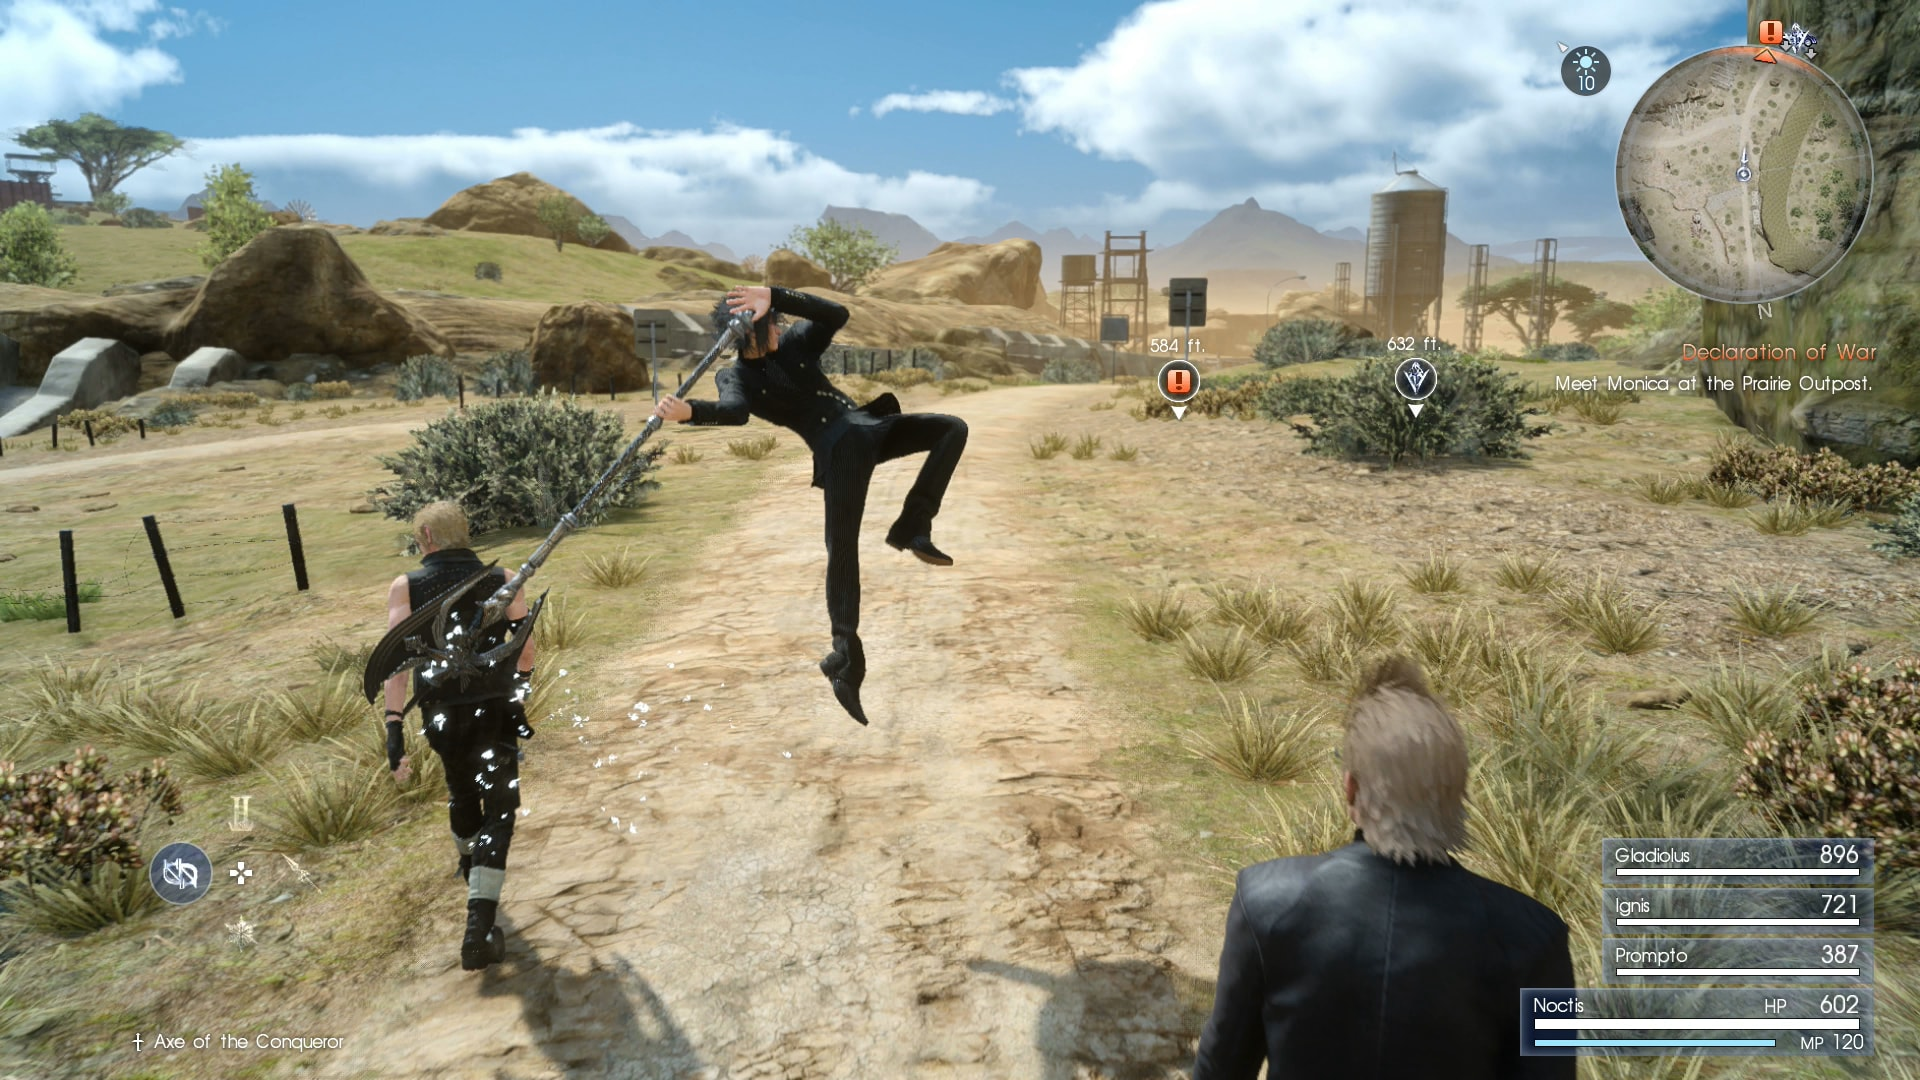 the-pros-and-cons-of-final-fantasy-xv-7